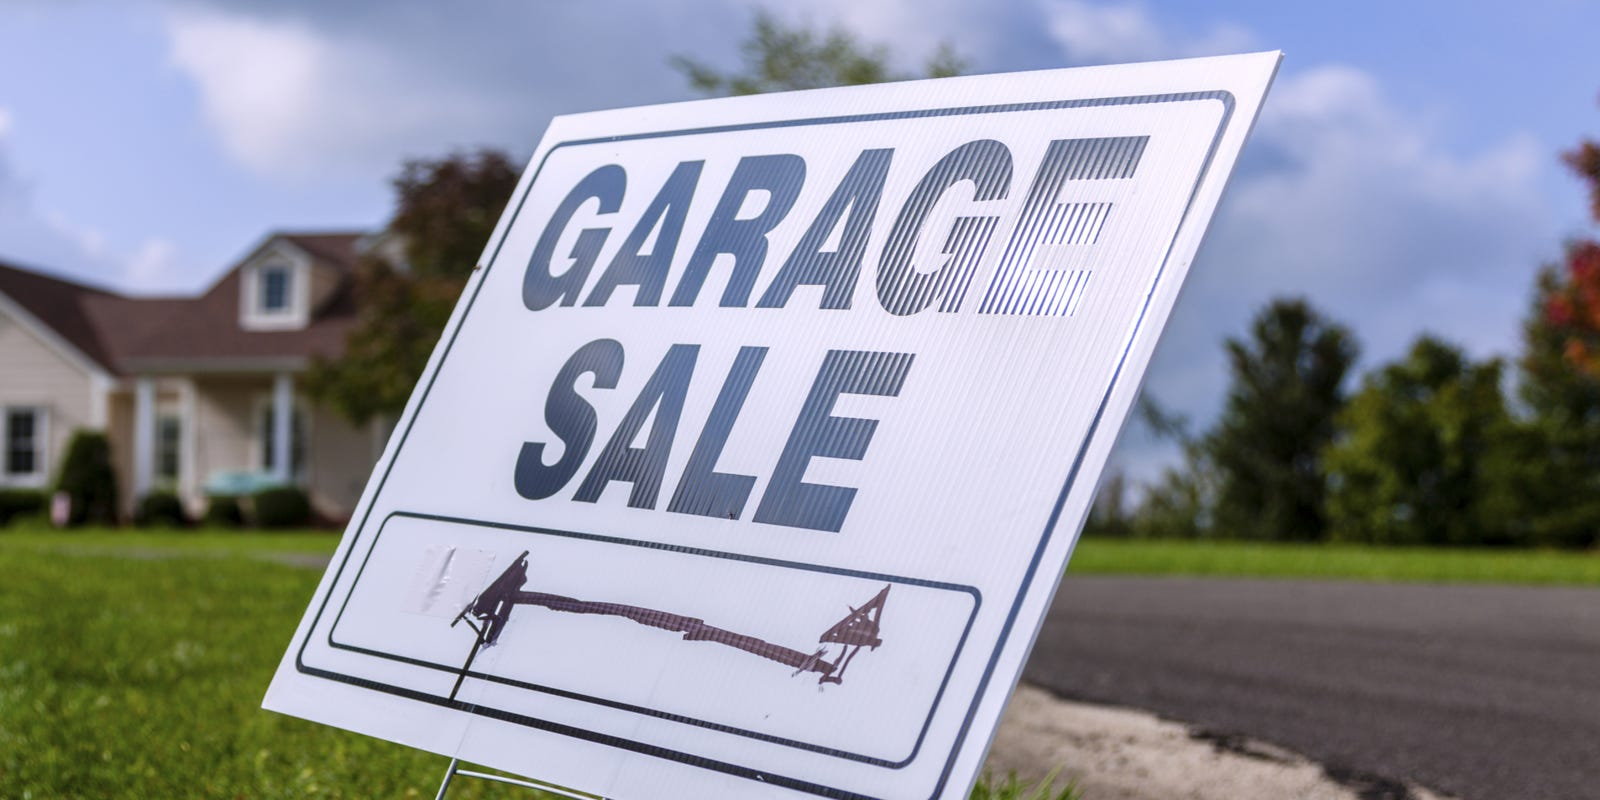 Garage sales Rochester NY: How to find the best deals